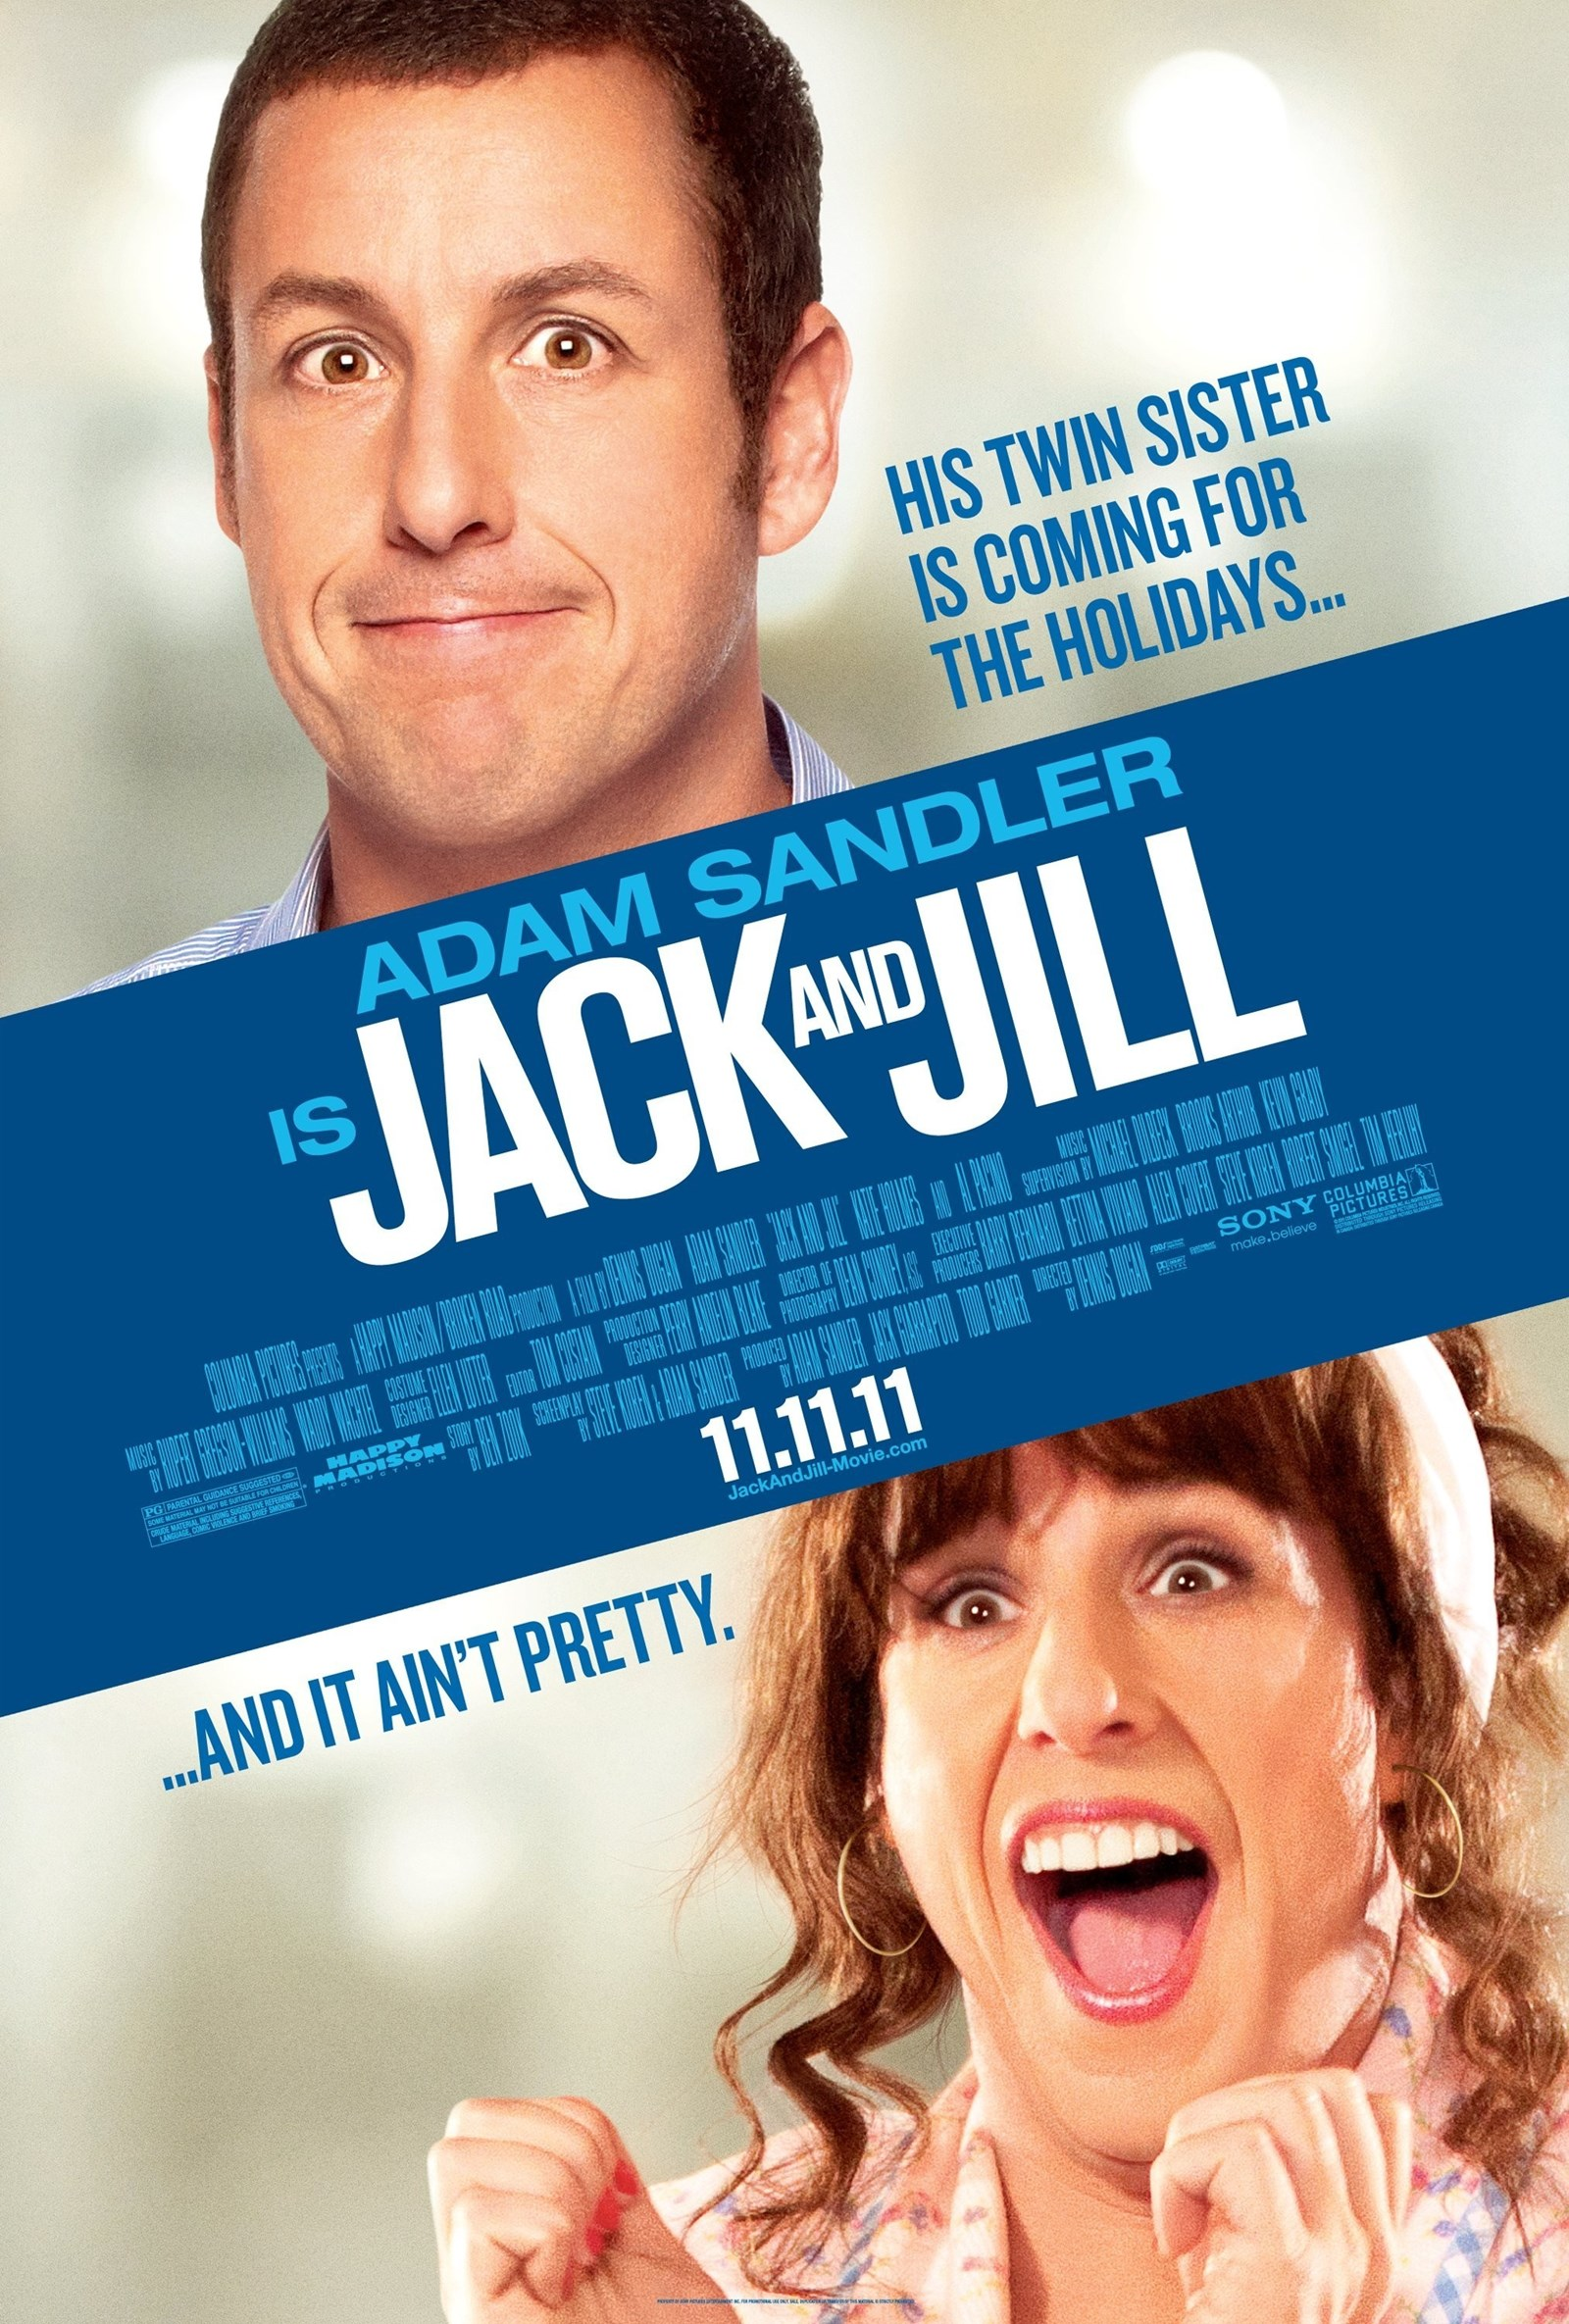 jack and jill are owners of upahill an s corporation they own 25 and 75 percent respectively Chfd 311 week 6 quiz jack and jill are owners of upahill, an s corporation they own 25 and 75 year 1 year 2 ordinary income jack (25%.